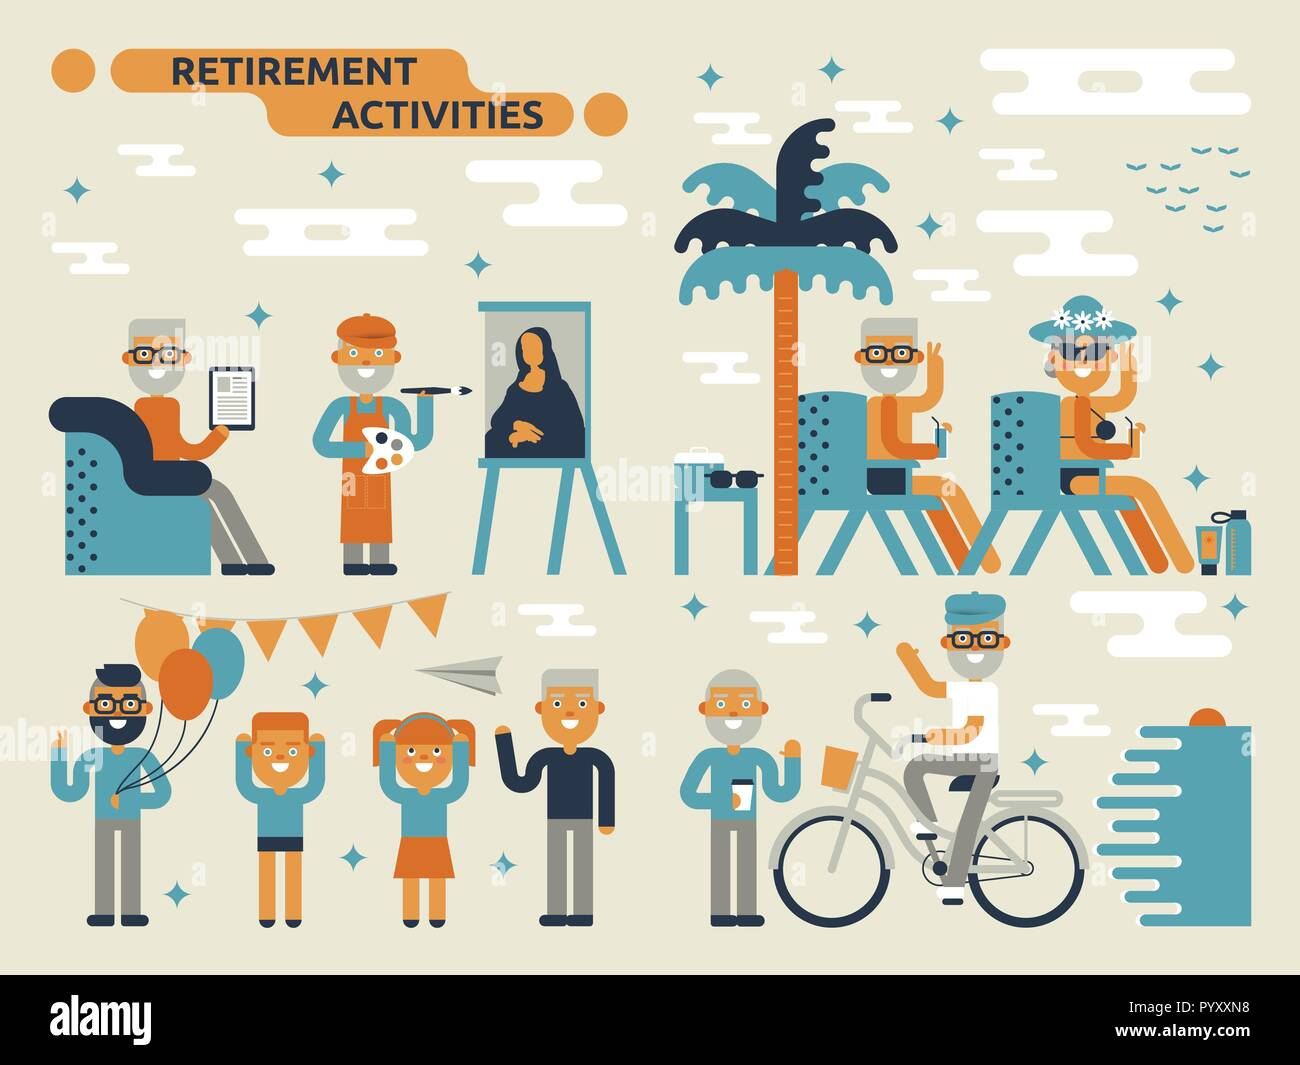 Illustration of retirement activities concept with many elderly characters - Stock Vector